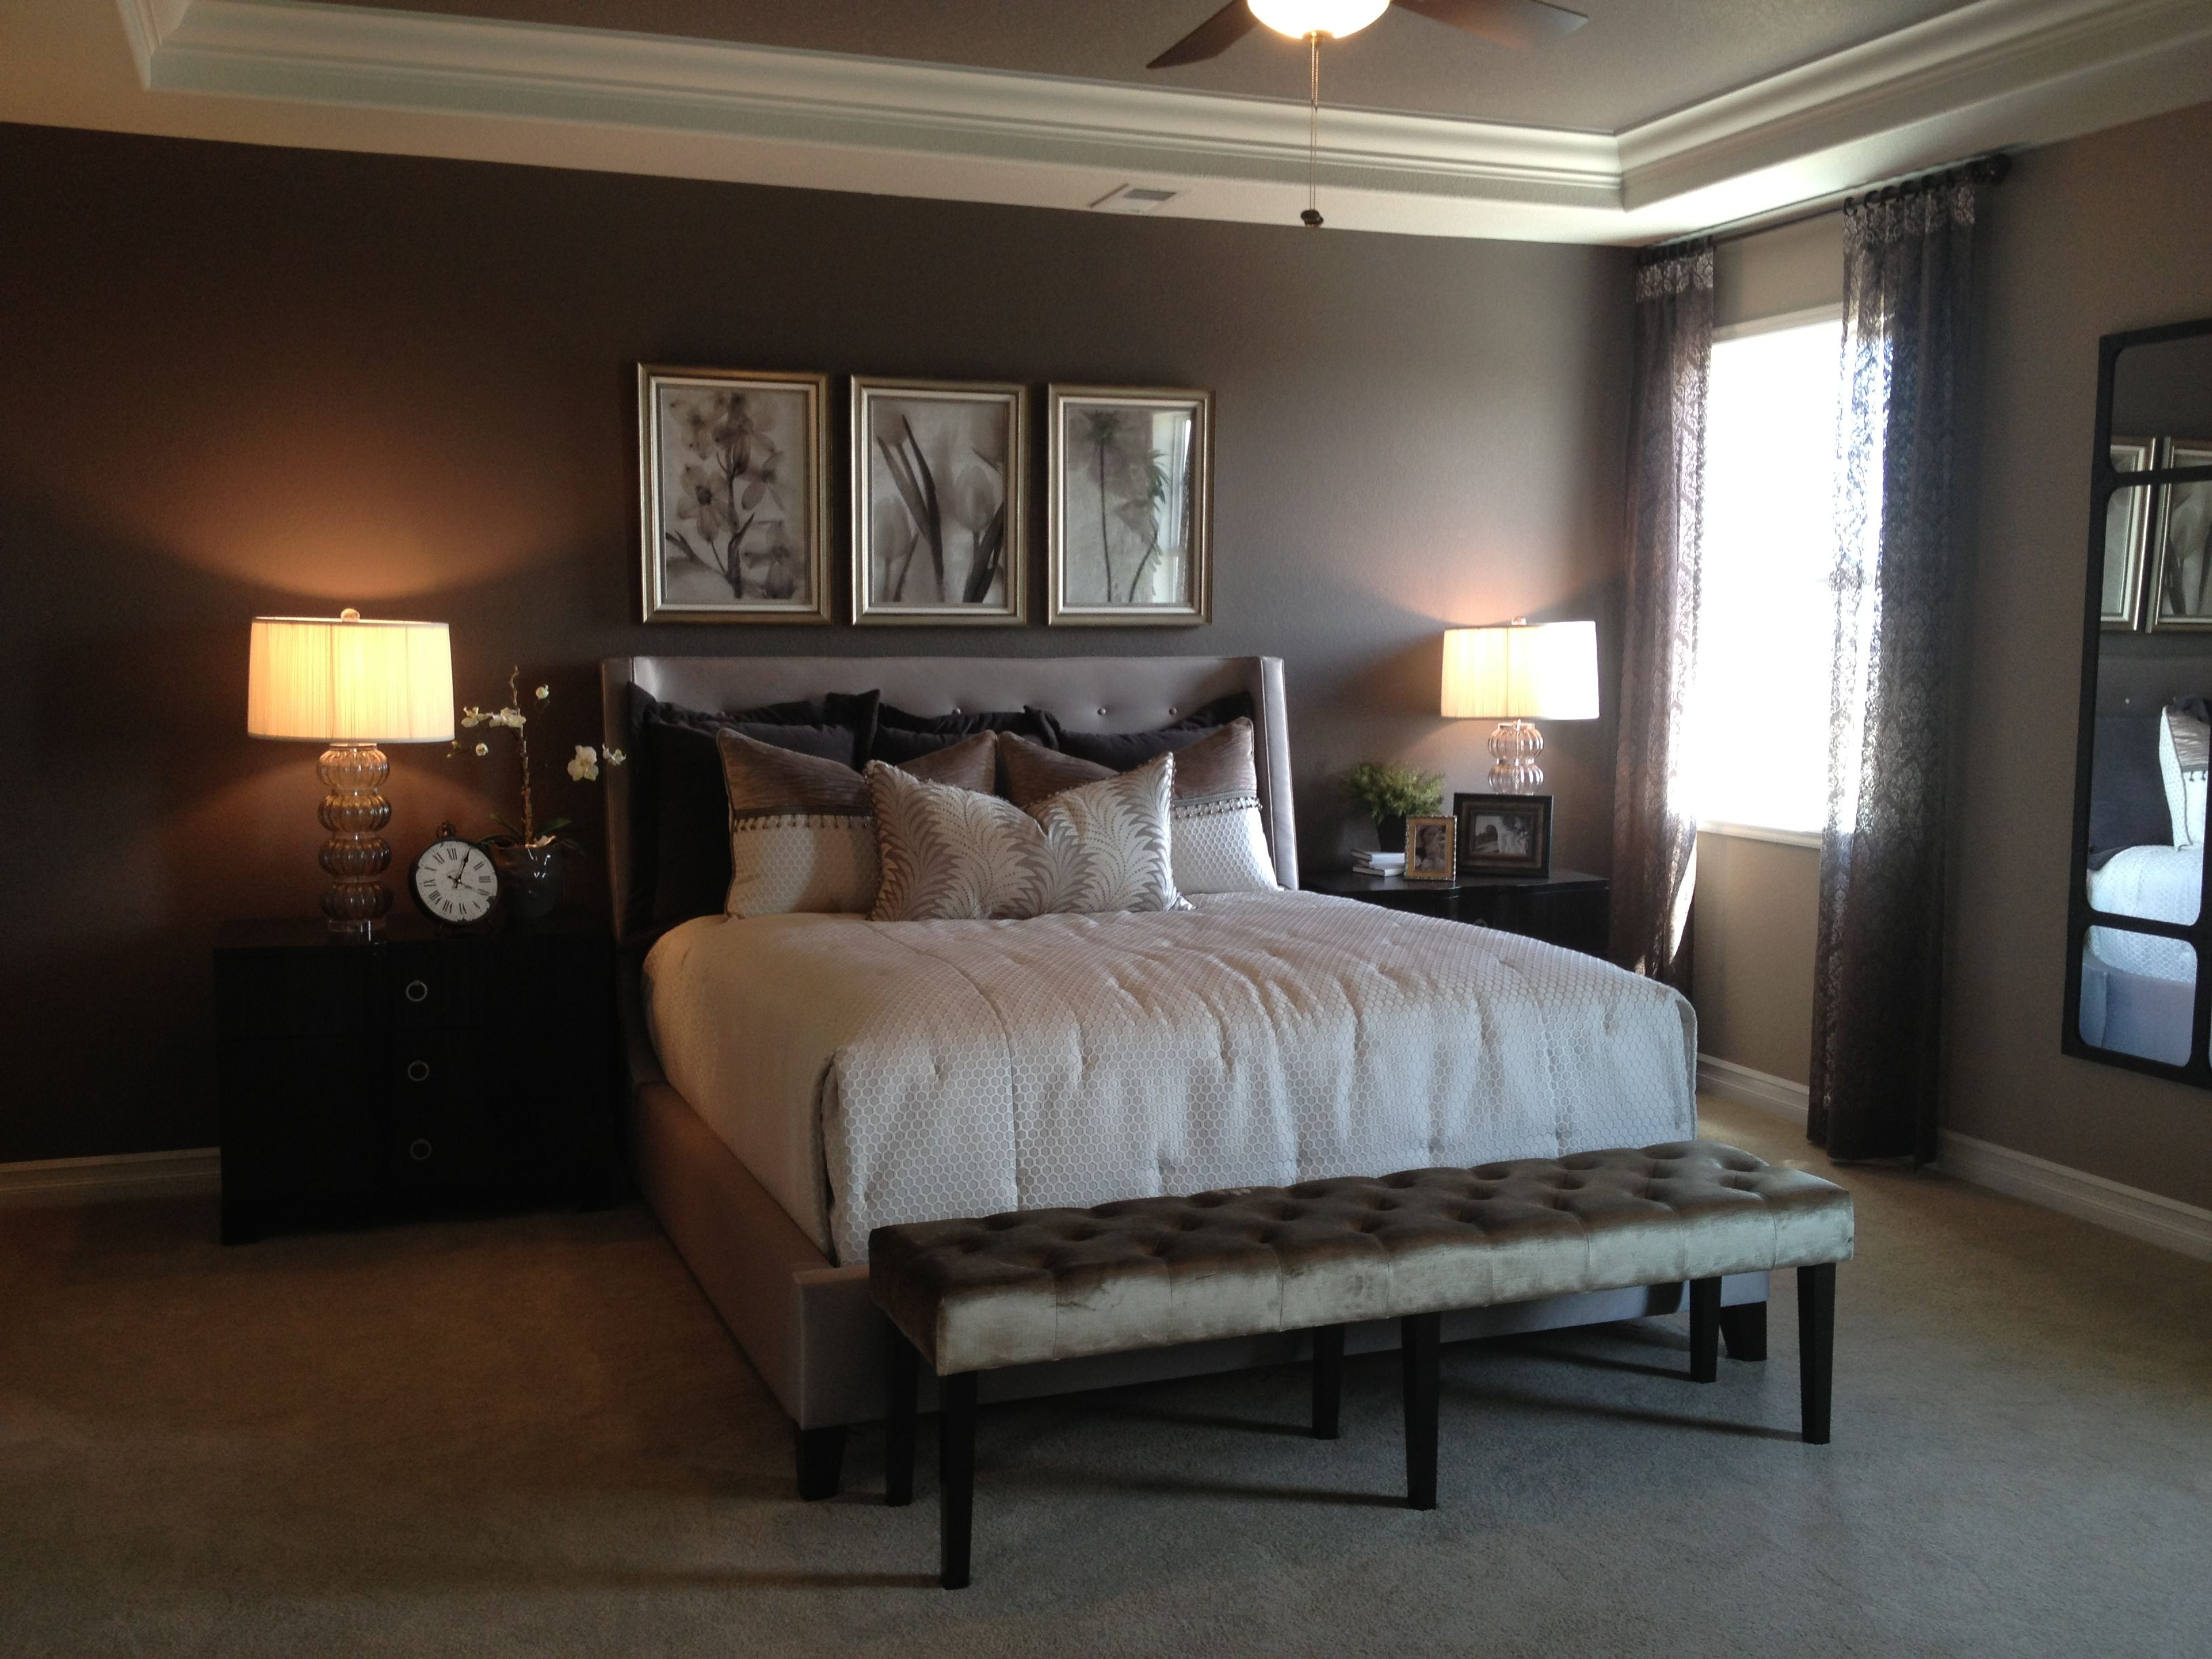 Parade of Homes 2013 master bedroom. Brown walls and white